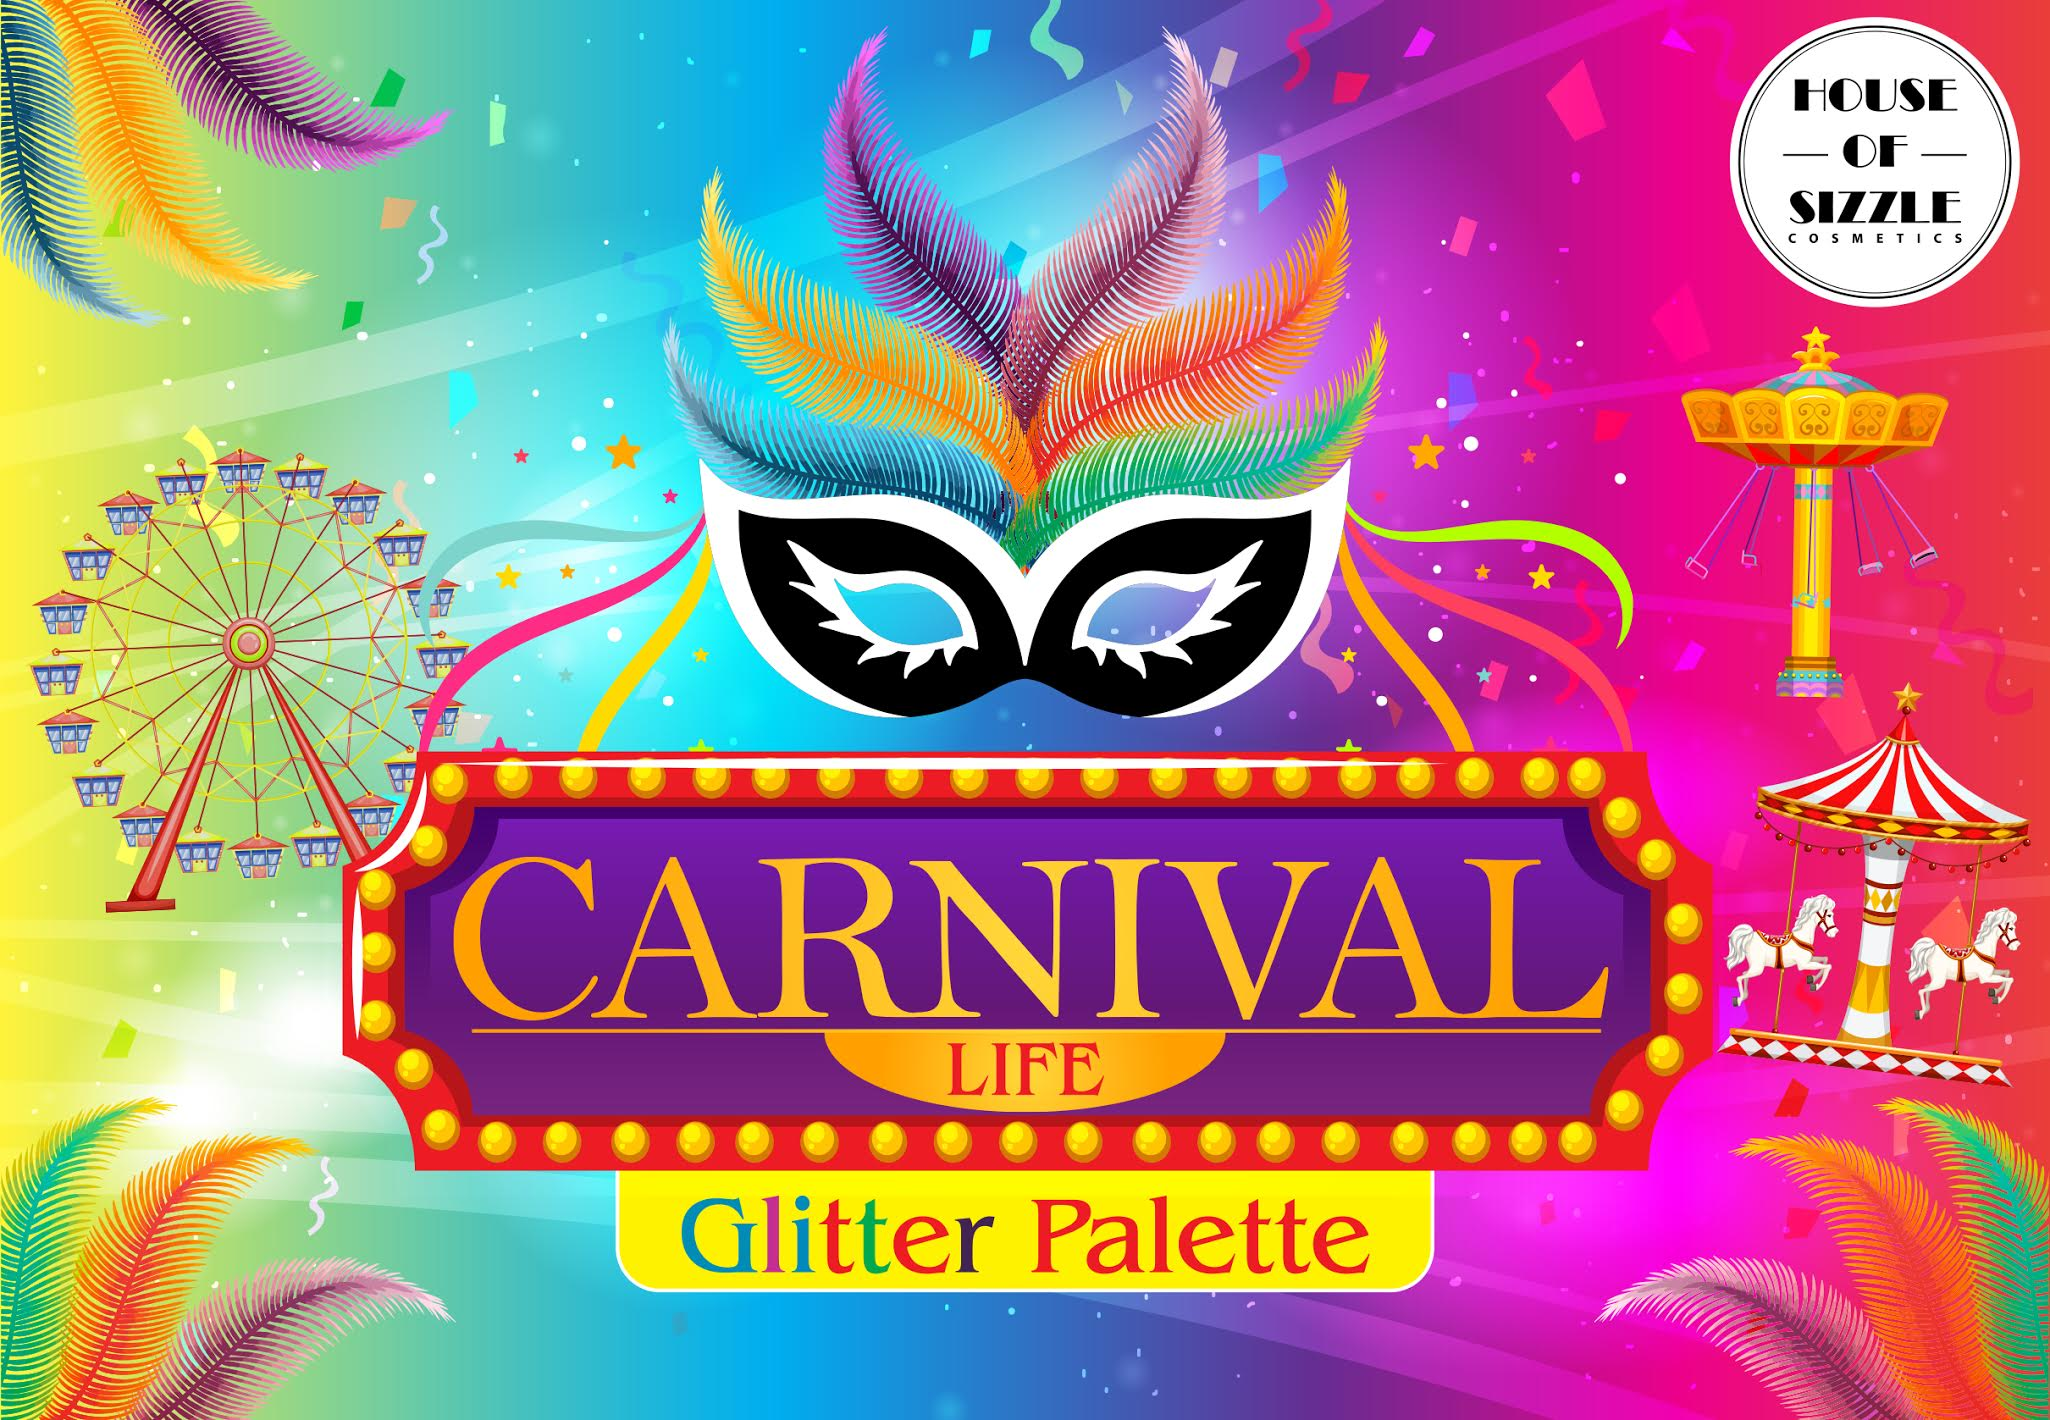 house-of-sizzle-cosmetics-carnival-life-glitter-palette-2